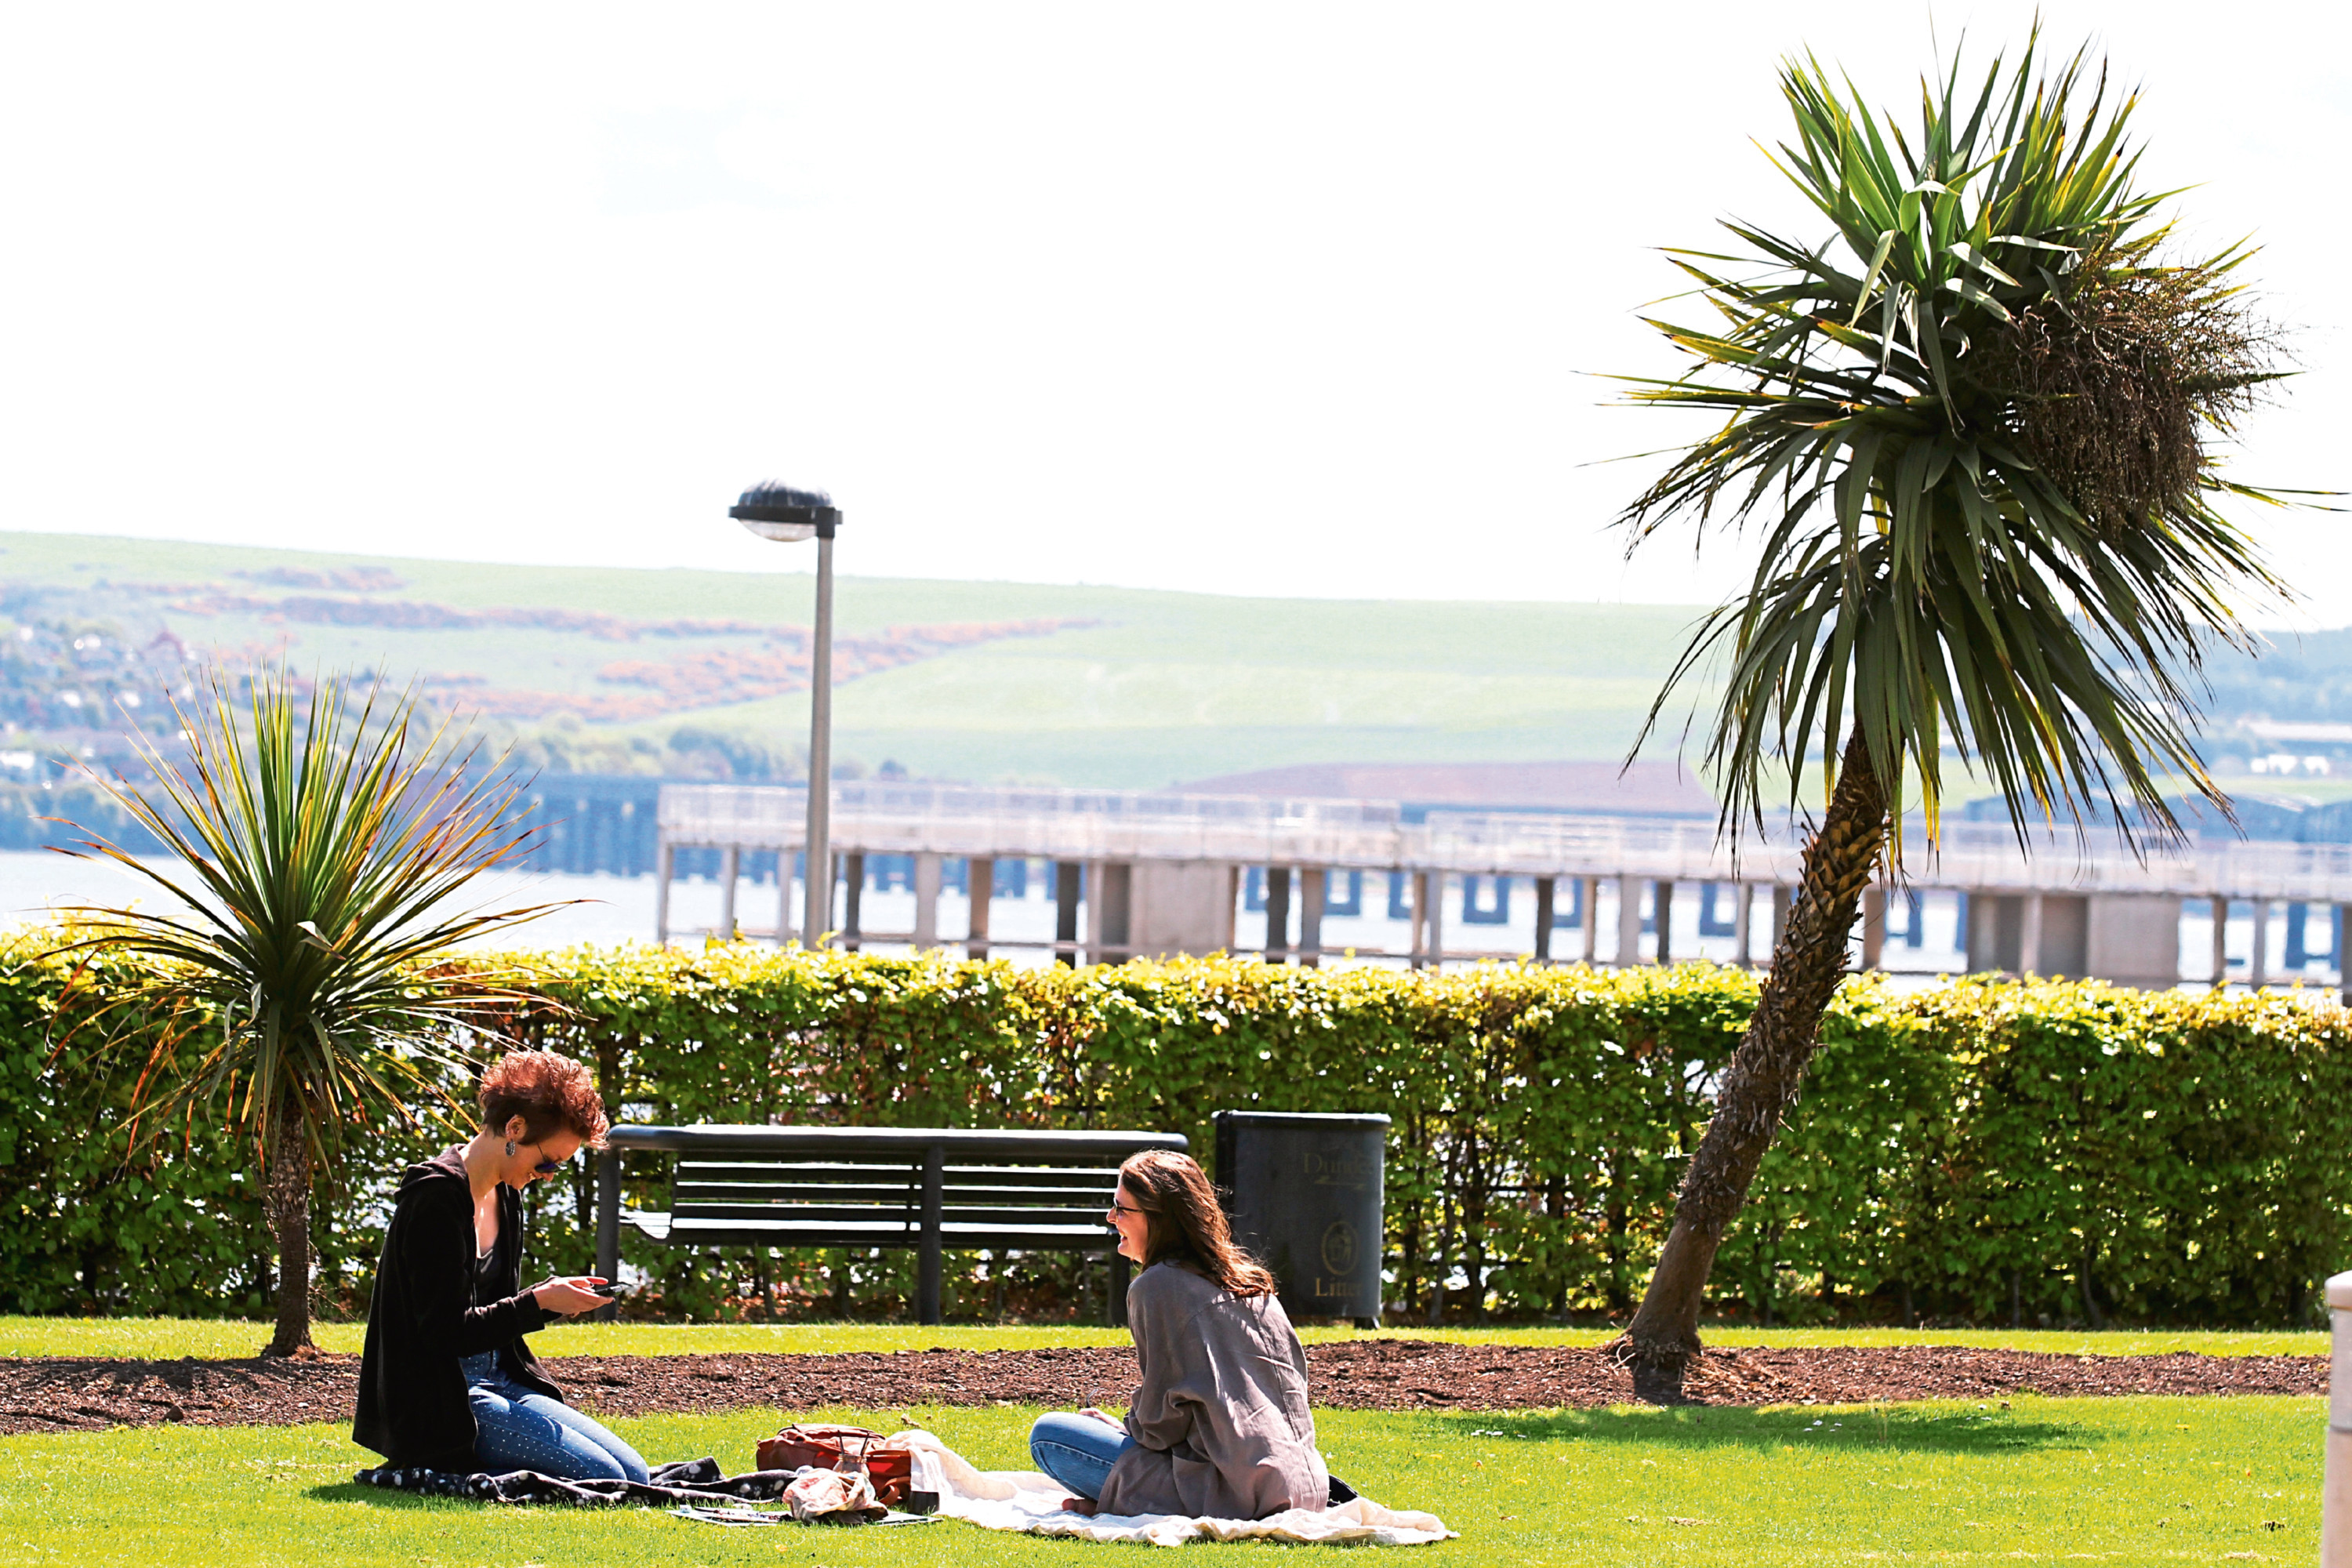 Two women have a picnic in the sun amongst the palm trees at Seabraes on Perth Road.